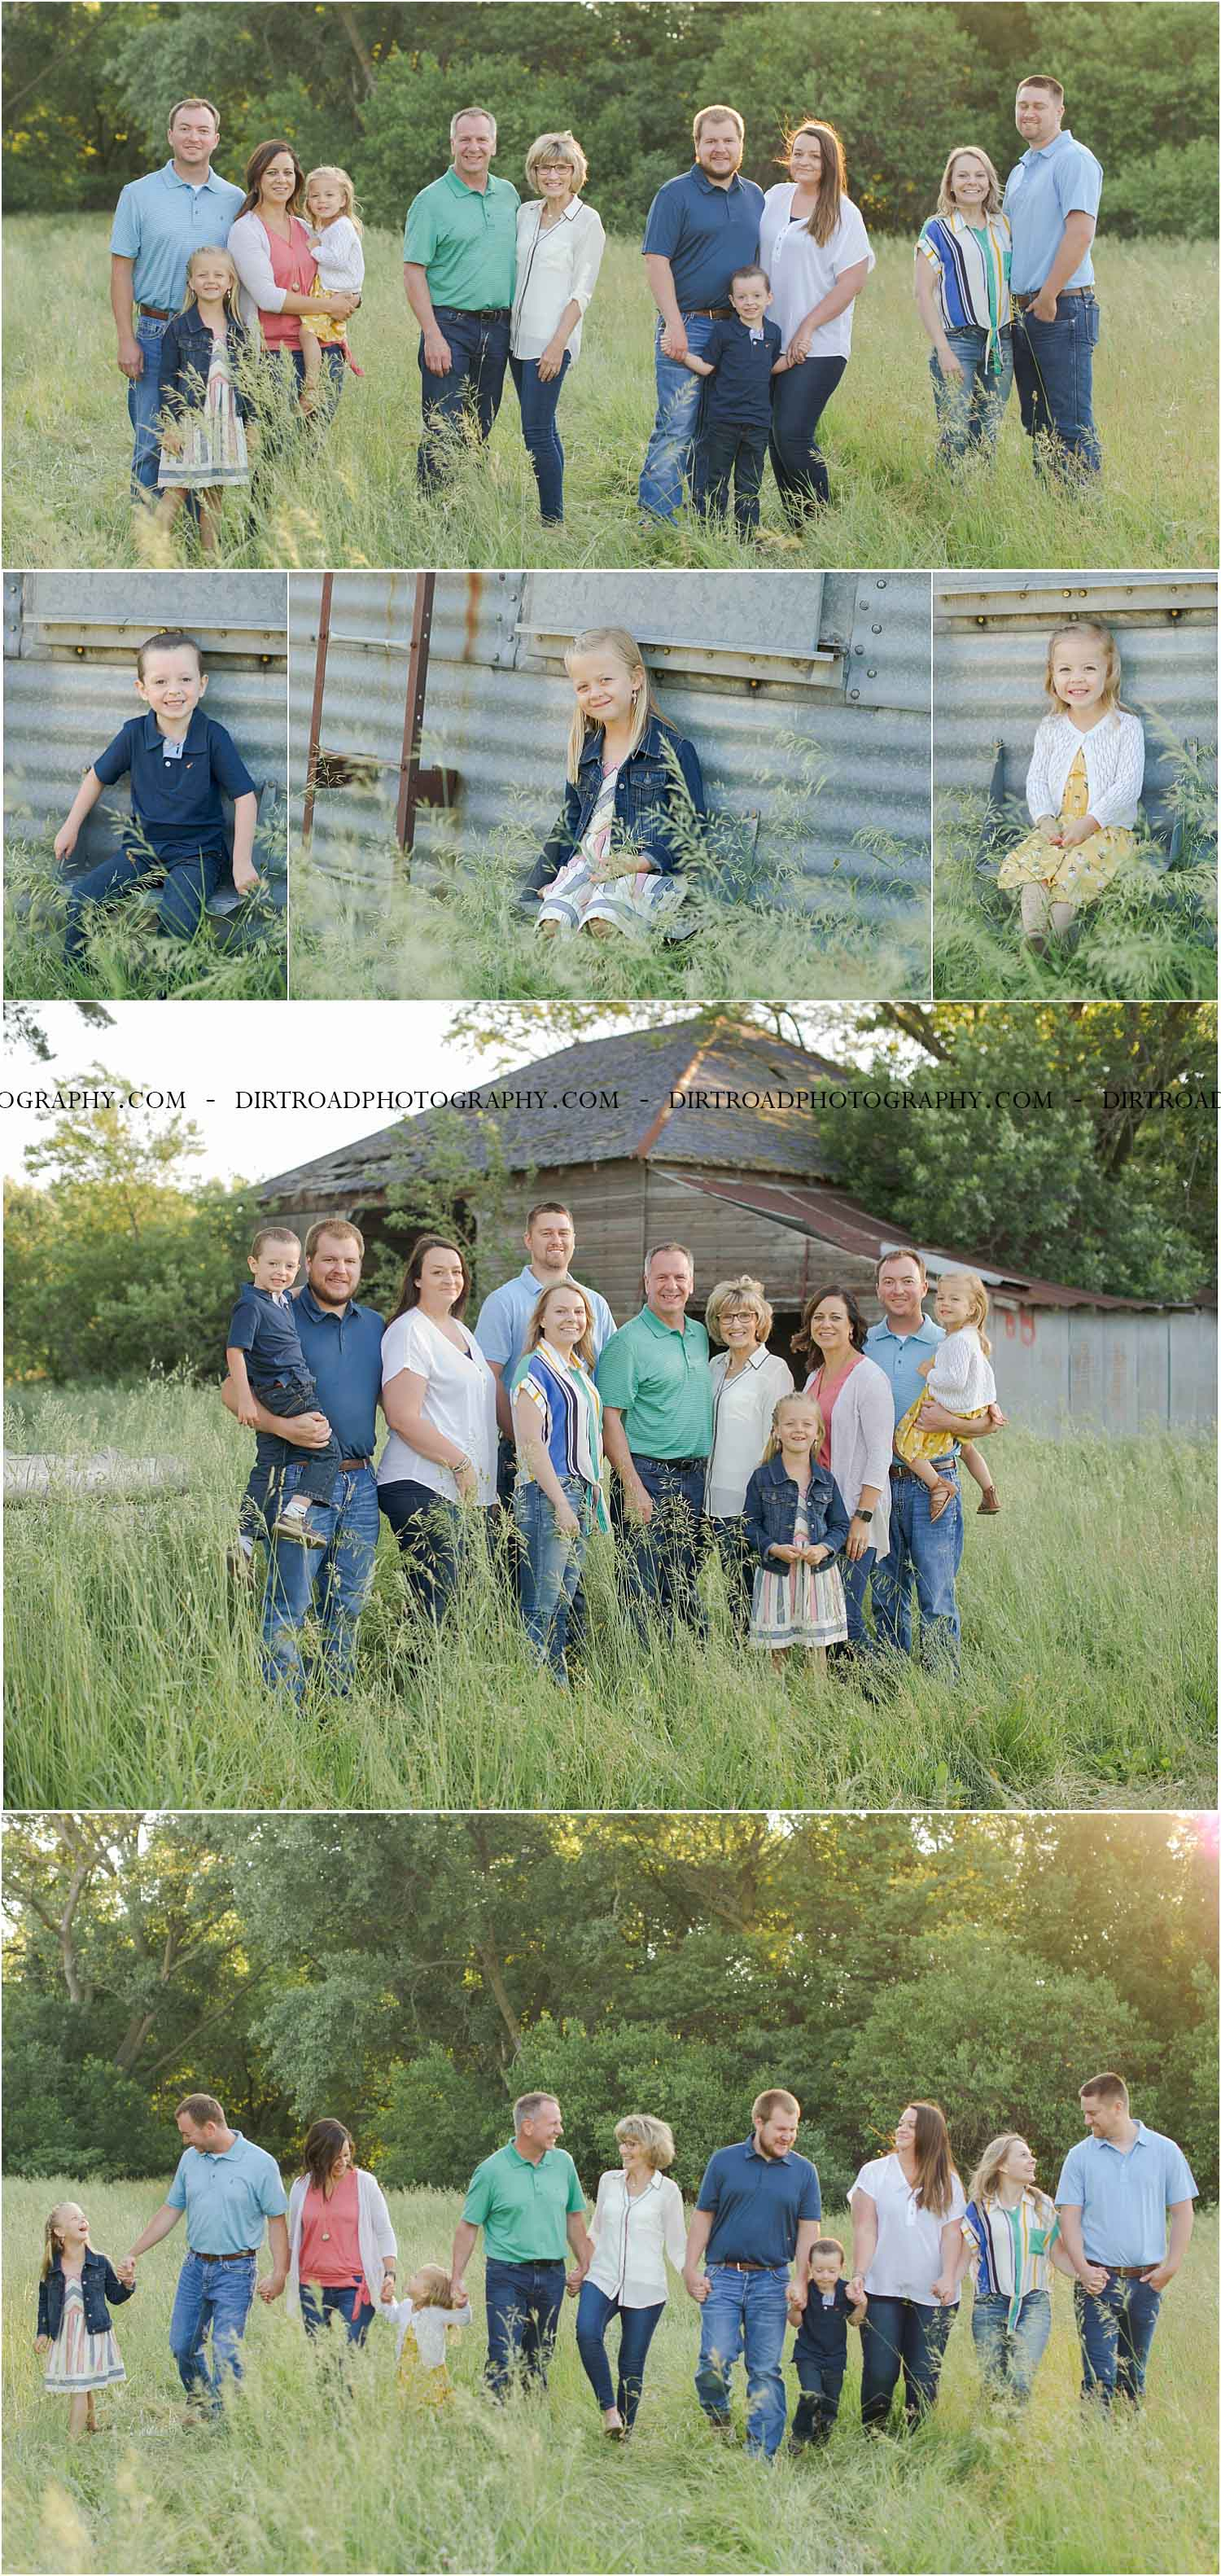 images of fairbanks family, three generations, from fairbury nebraska, beatrice nebraska, lincoln nebraska and omaha nebraska. photos taken in southeast rural area near wilber nebraska on a gravel road at sunset with family walking towards camera. family is dressed in navy, coral, light blue, cream, white, stripes and blue jeans with sandals. surrounded by tall grass in early spring with short corn and soybeans starting to grow. family standing in tall grass with trees in the background. grandparents are looking at camera while kids looking at parents. photo taken by dirt road photography and photographer is kelsey (homolka) nerud.